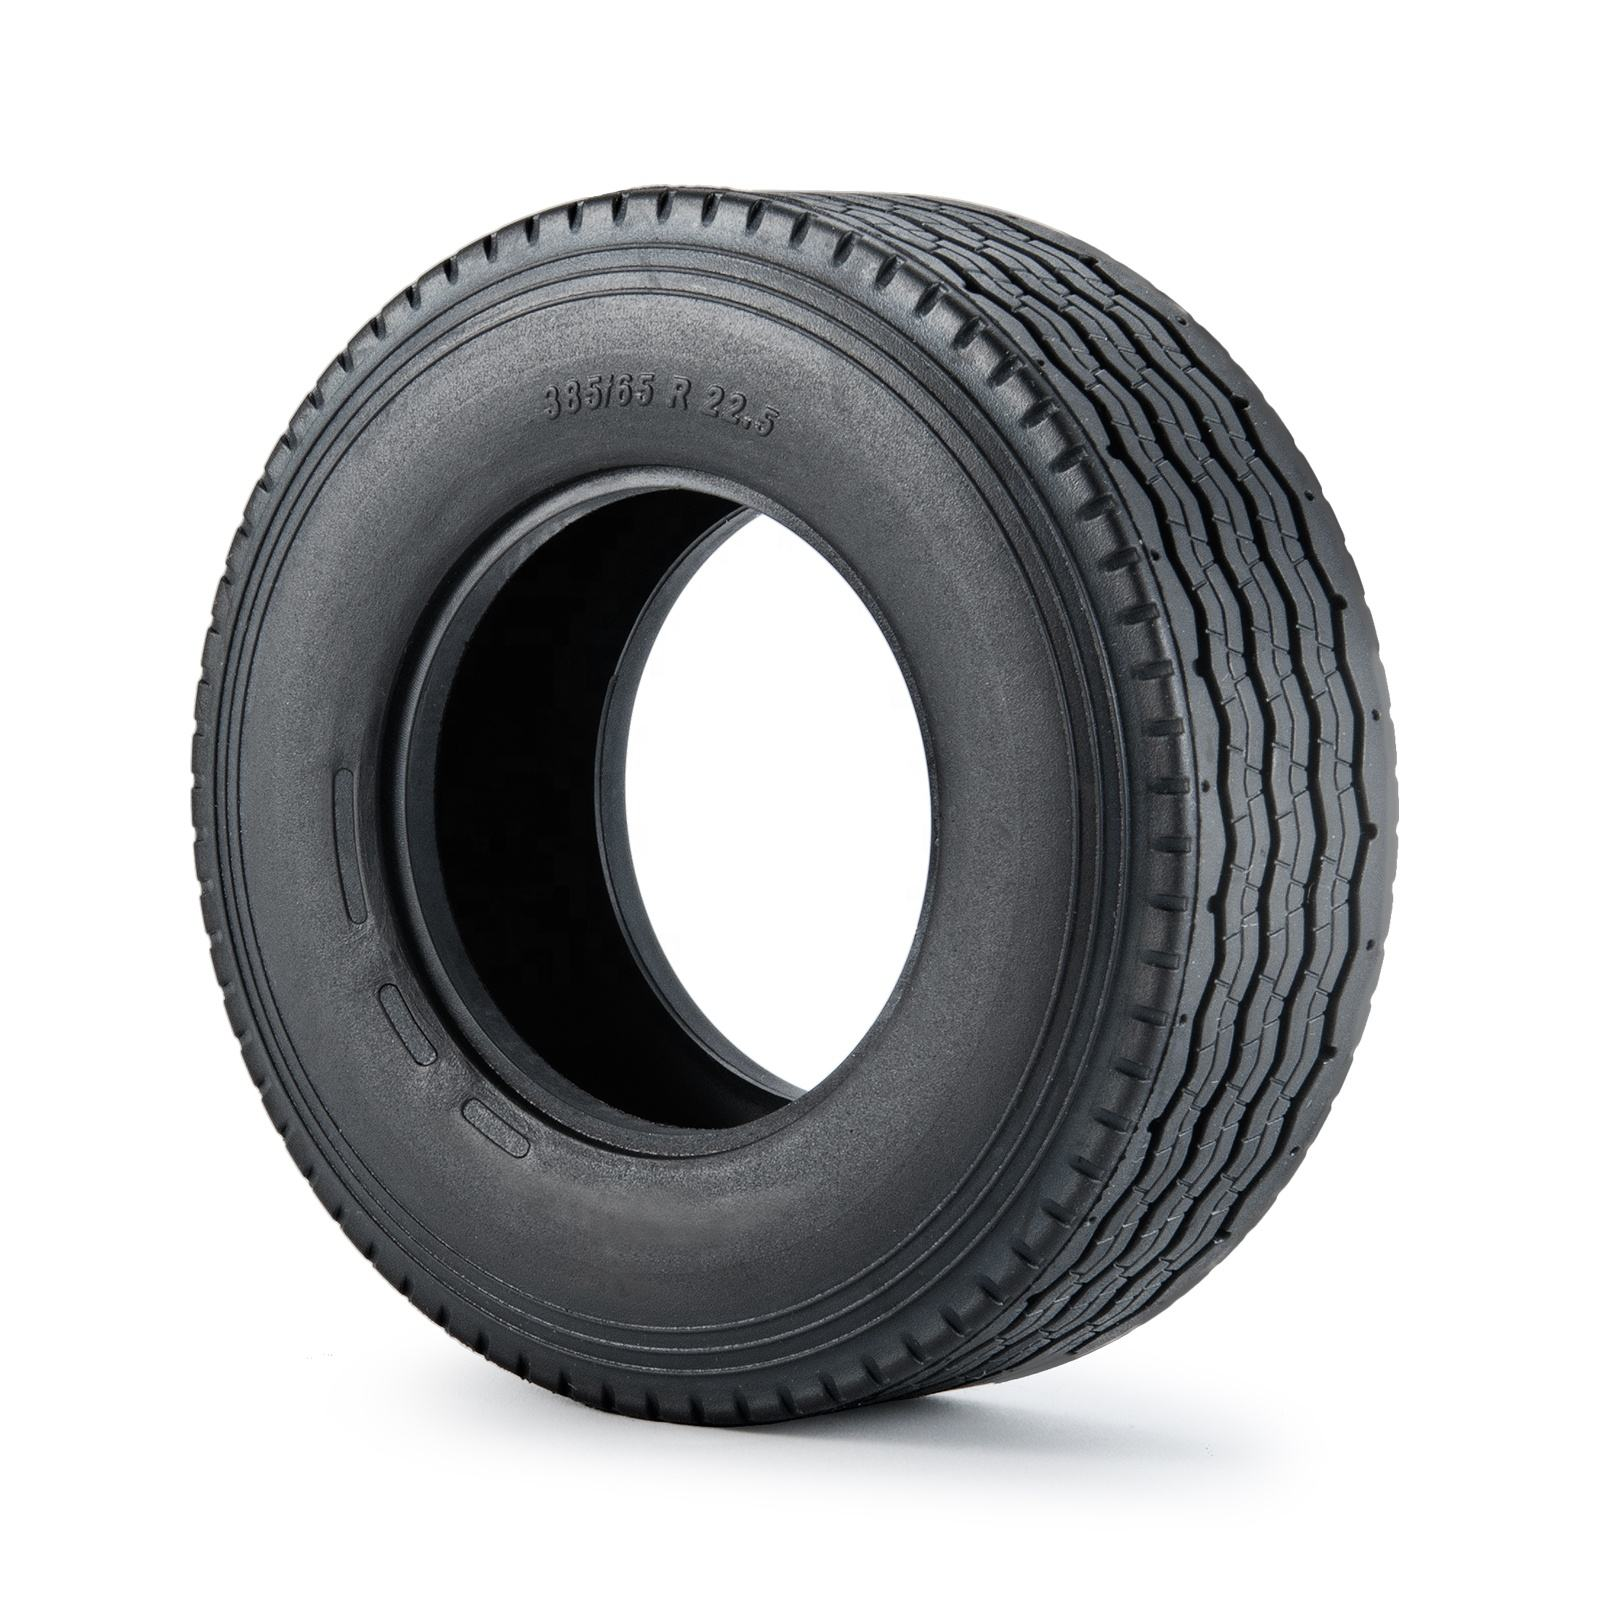 30mm Width Black Rubber Tyres Tires for Tamiya 1:14 RC Trailer Tractor Truck Front Wheel Rims